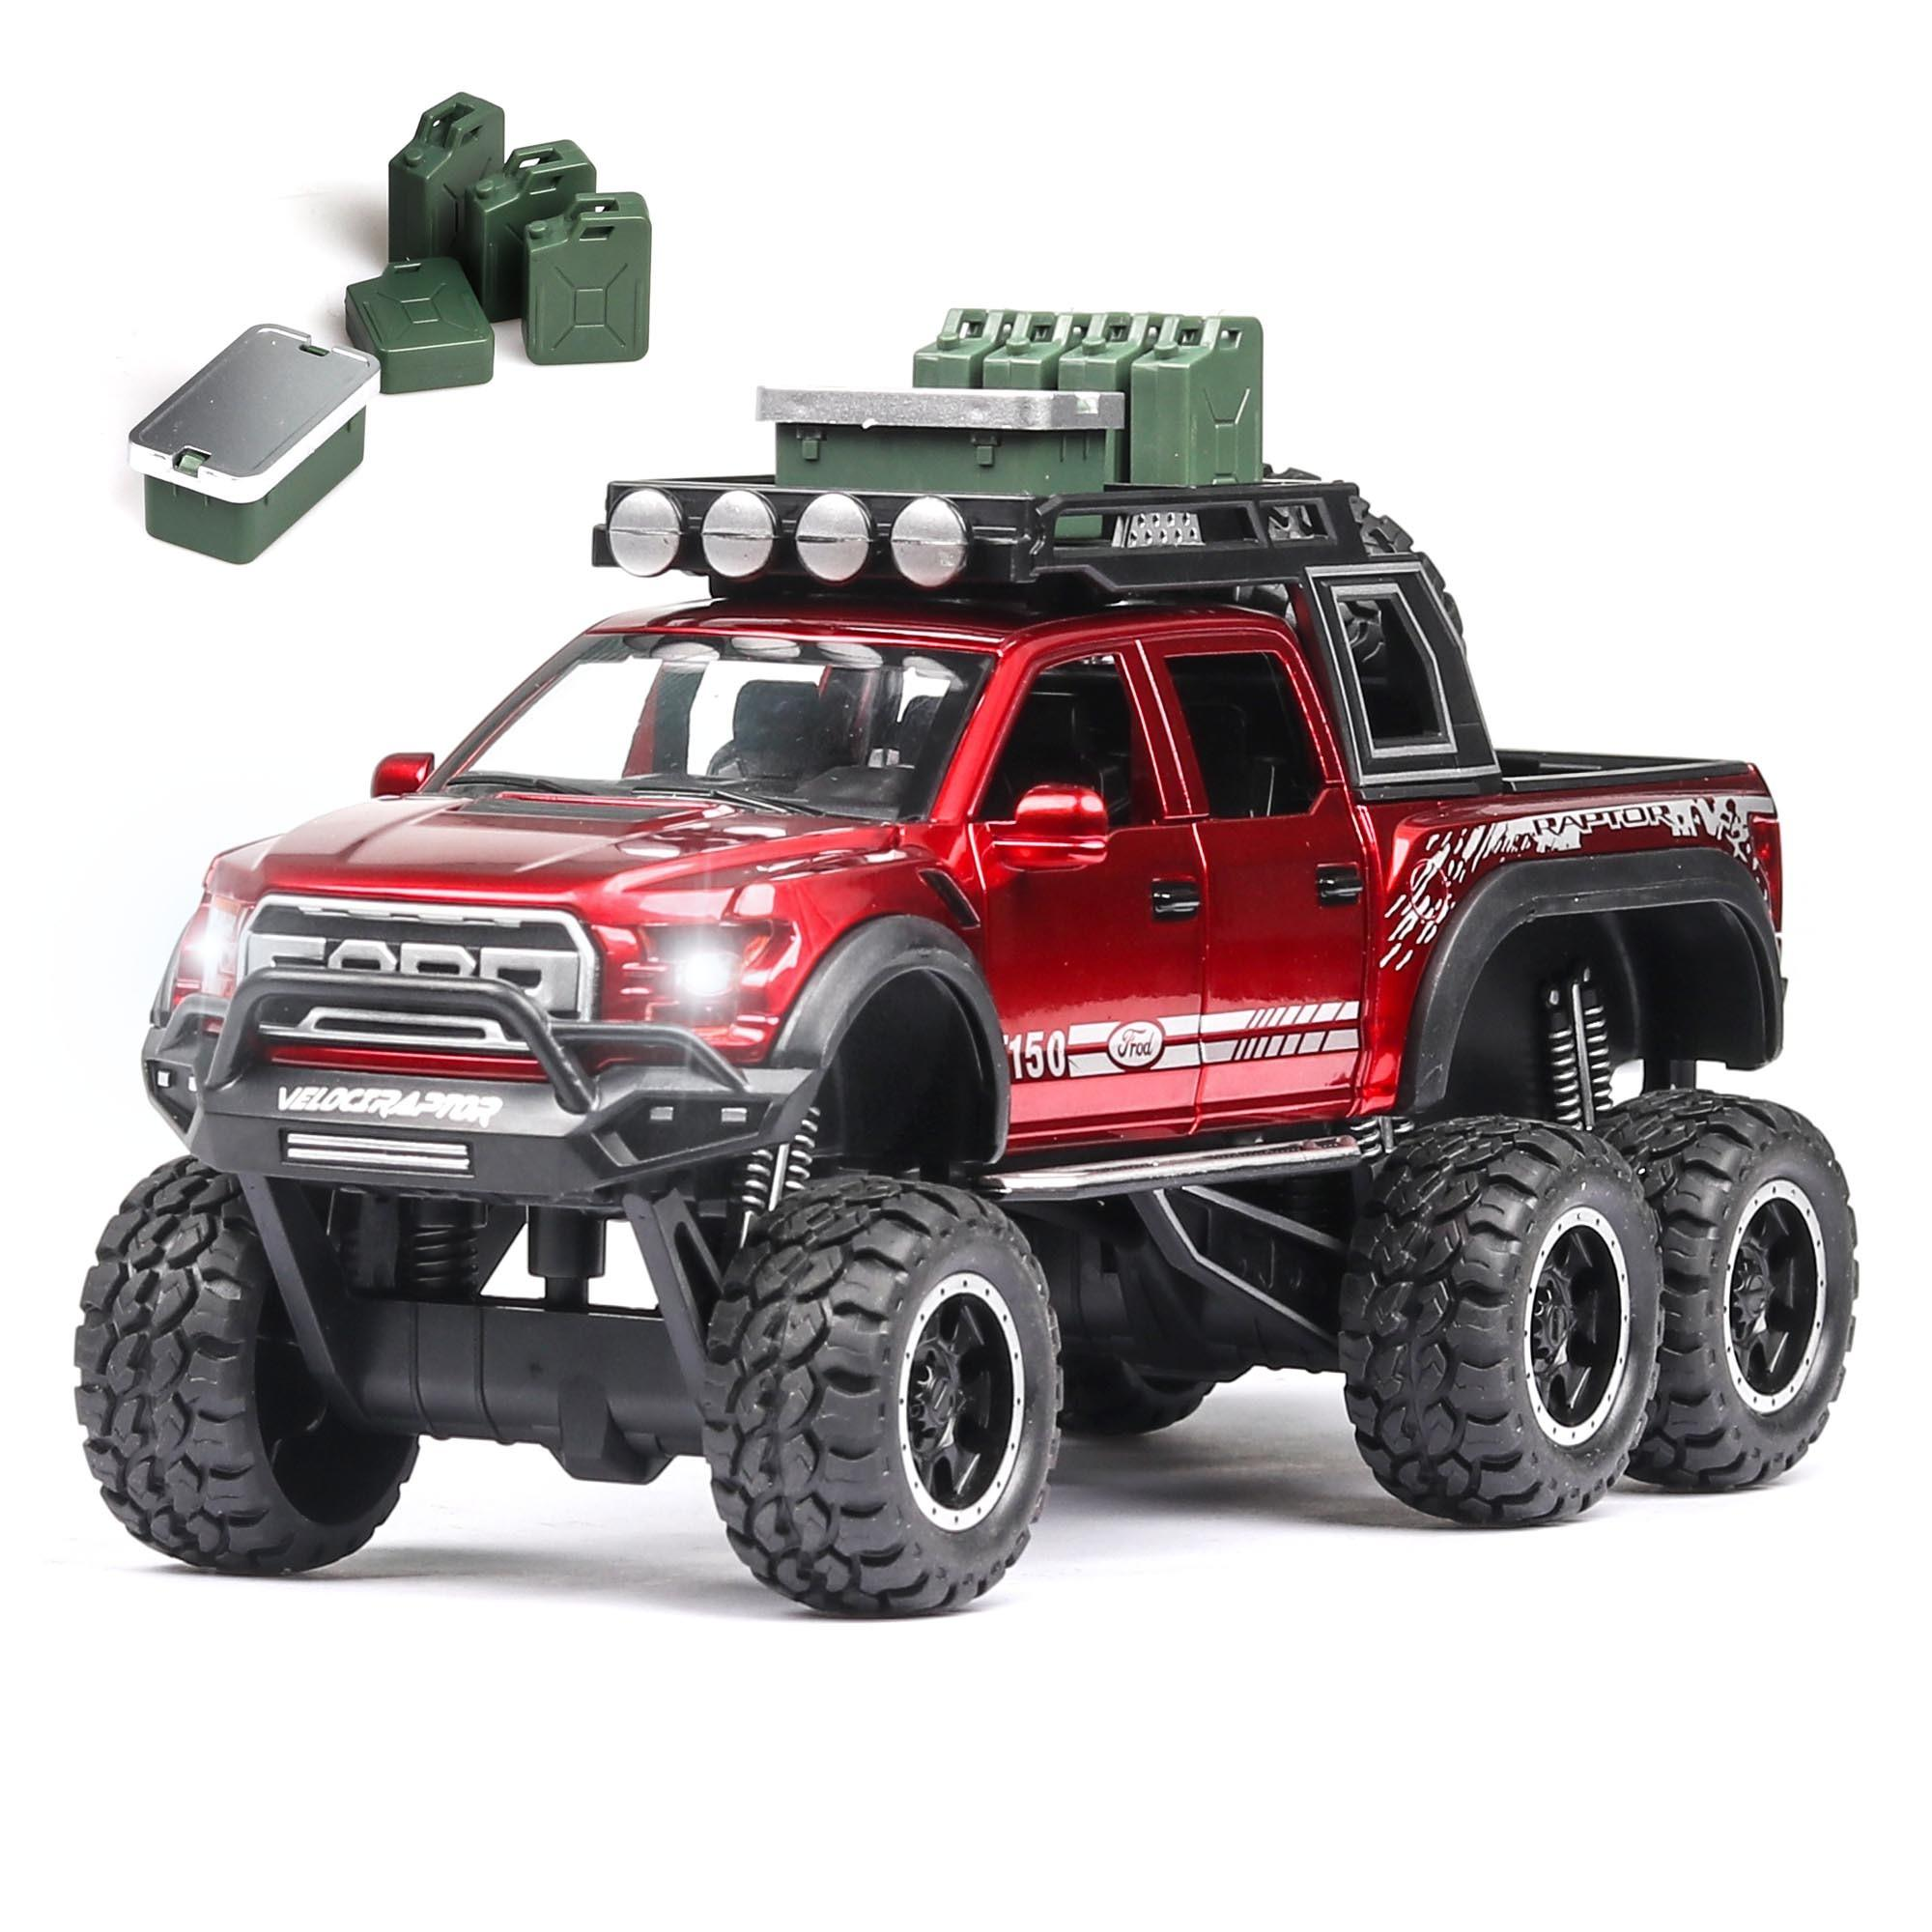 1:28 Diecast FORD RAPTOR f150 SUV Metal Model Car Toy Wheels Alloy Vehicle Sound And Light Pull Back Kid Car Toys For Children Y200317